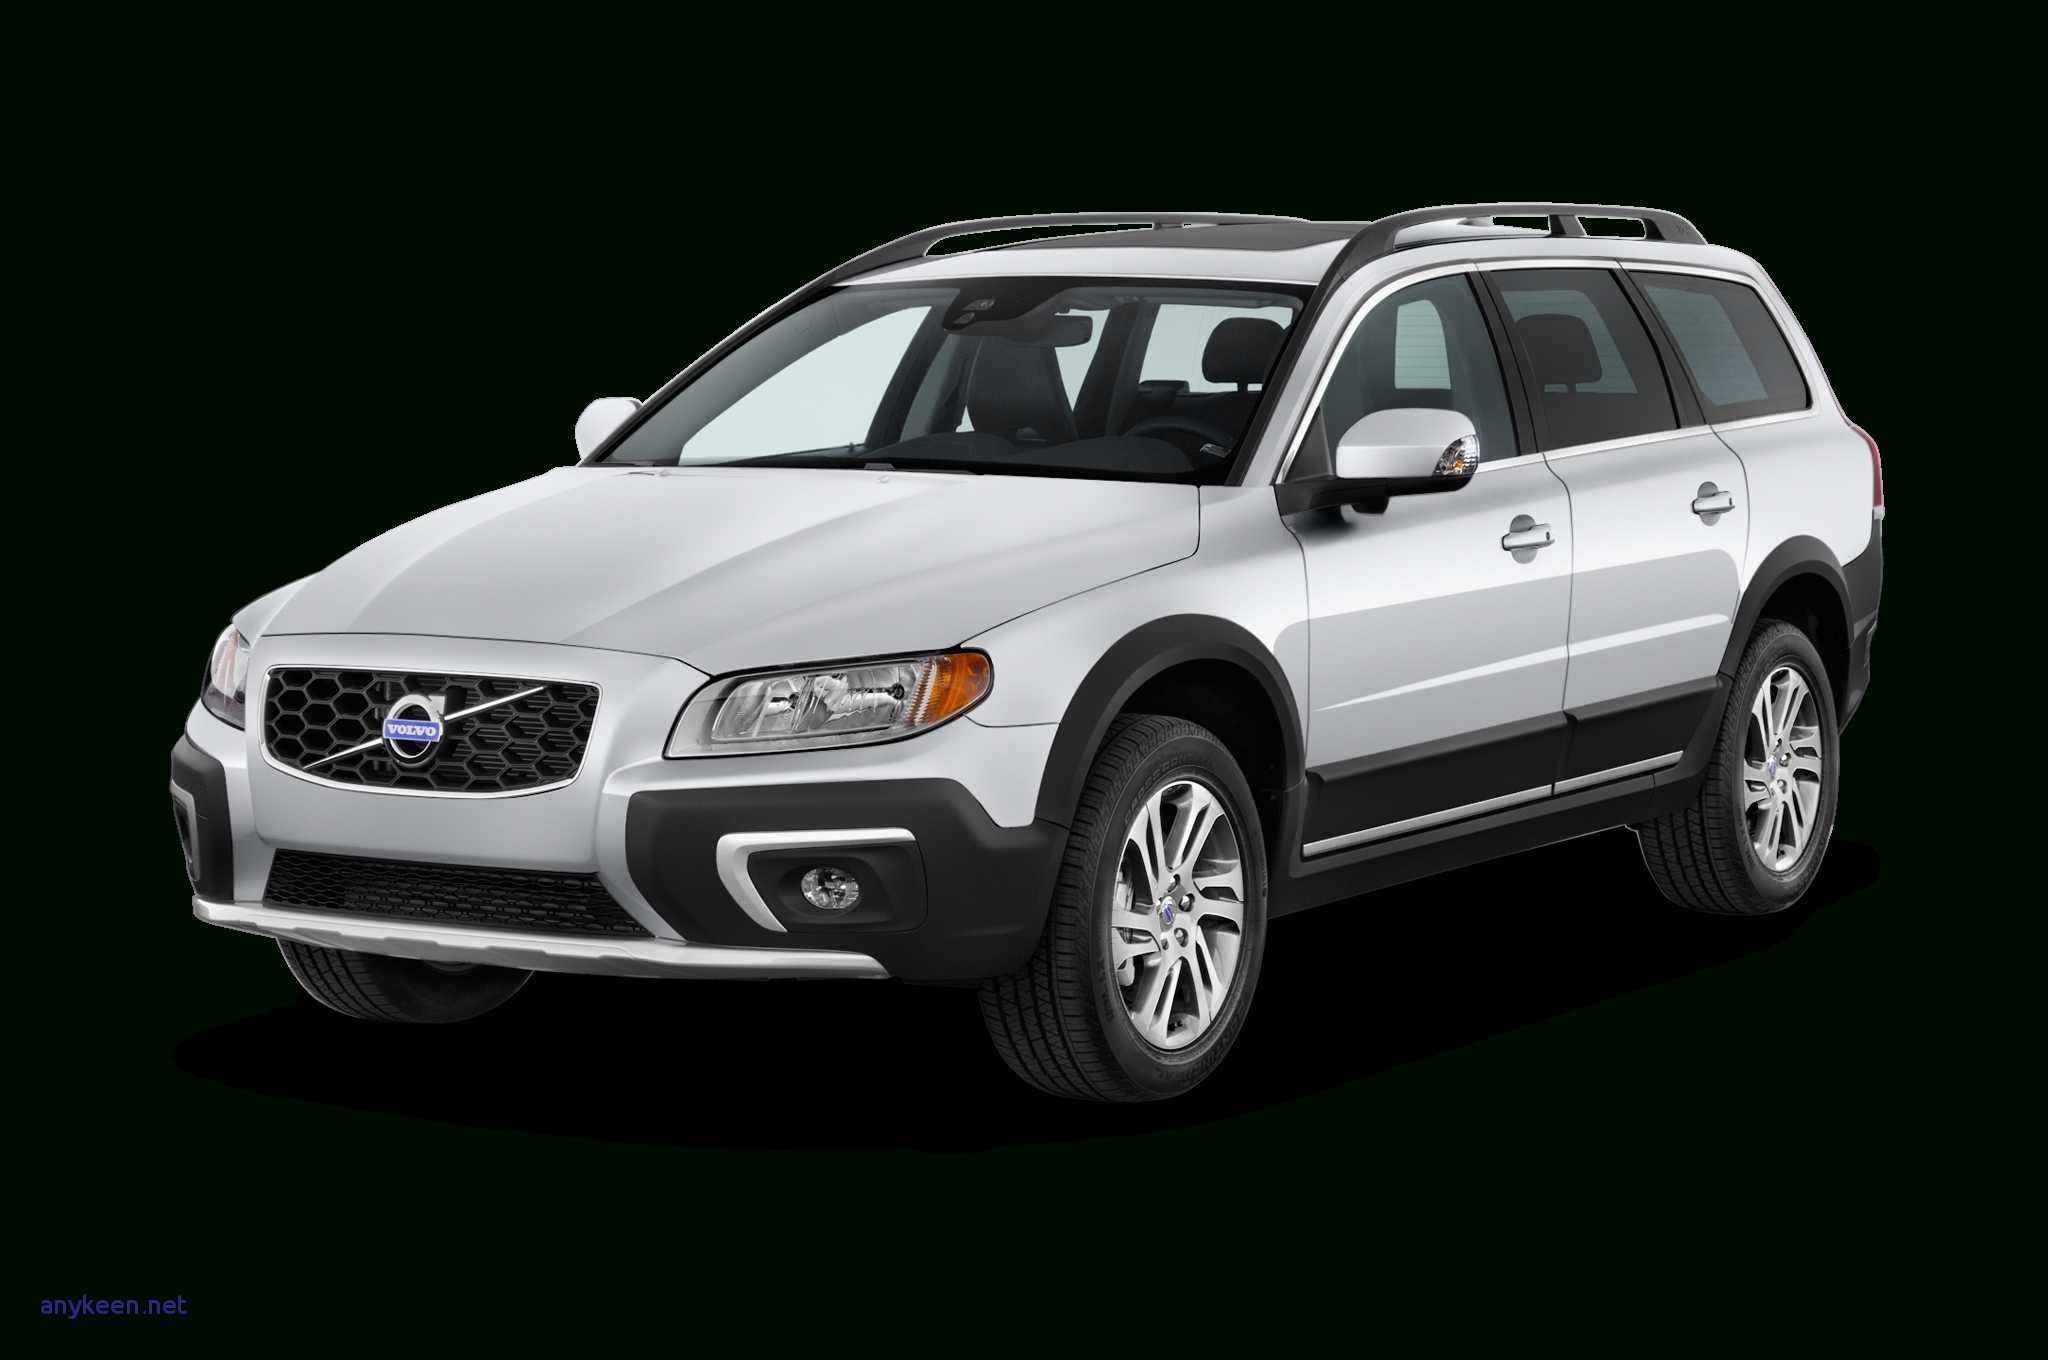 49 The 2019 Volvo Xc70 New Generation Wagon Price